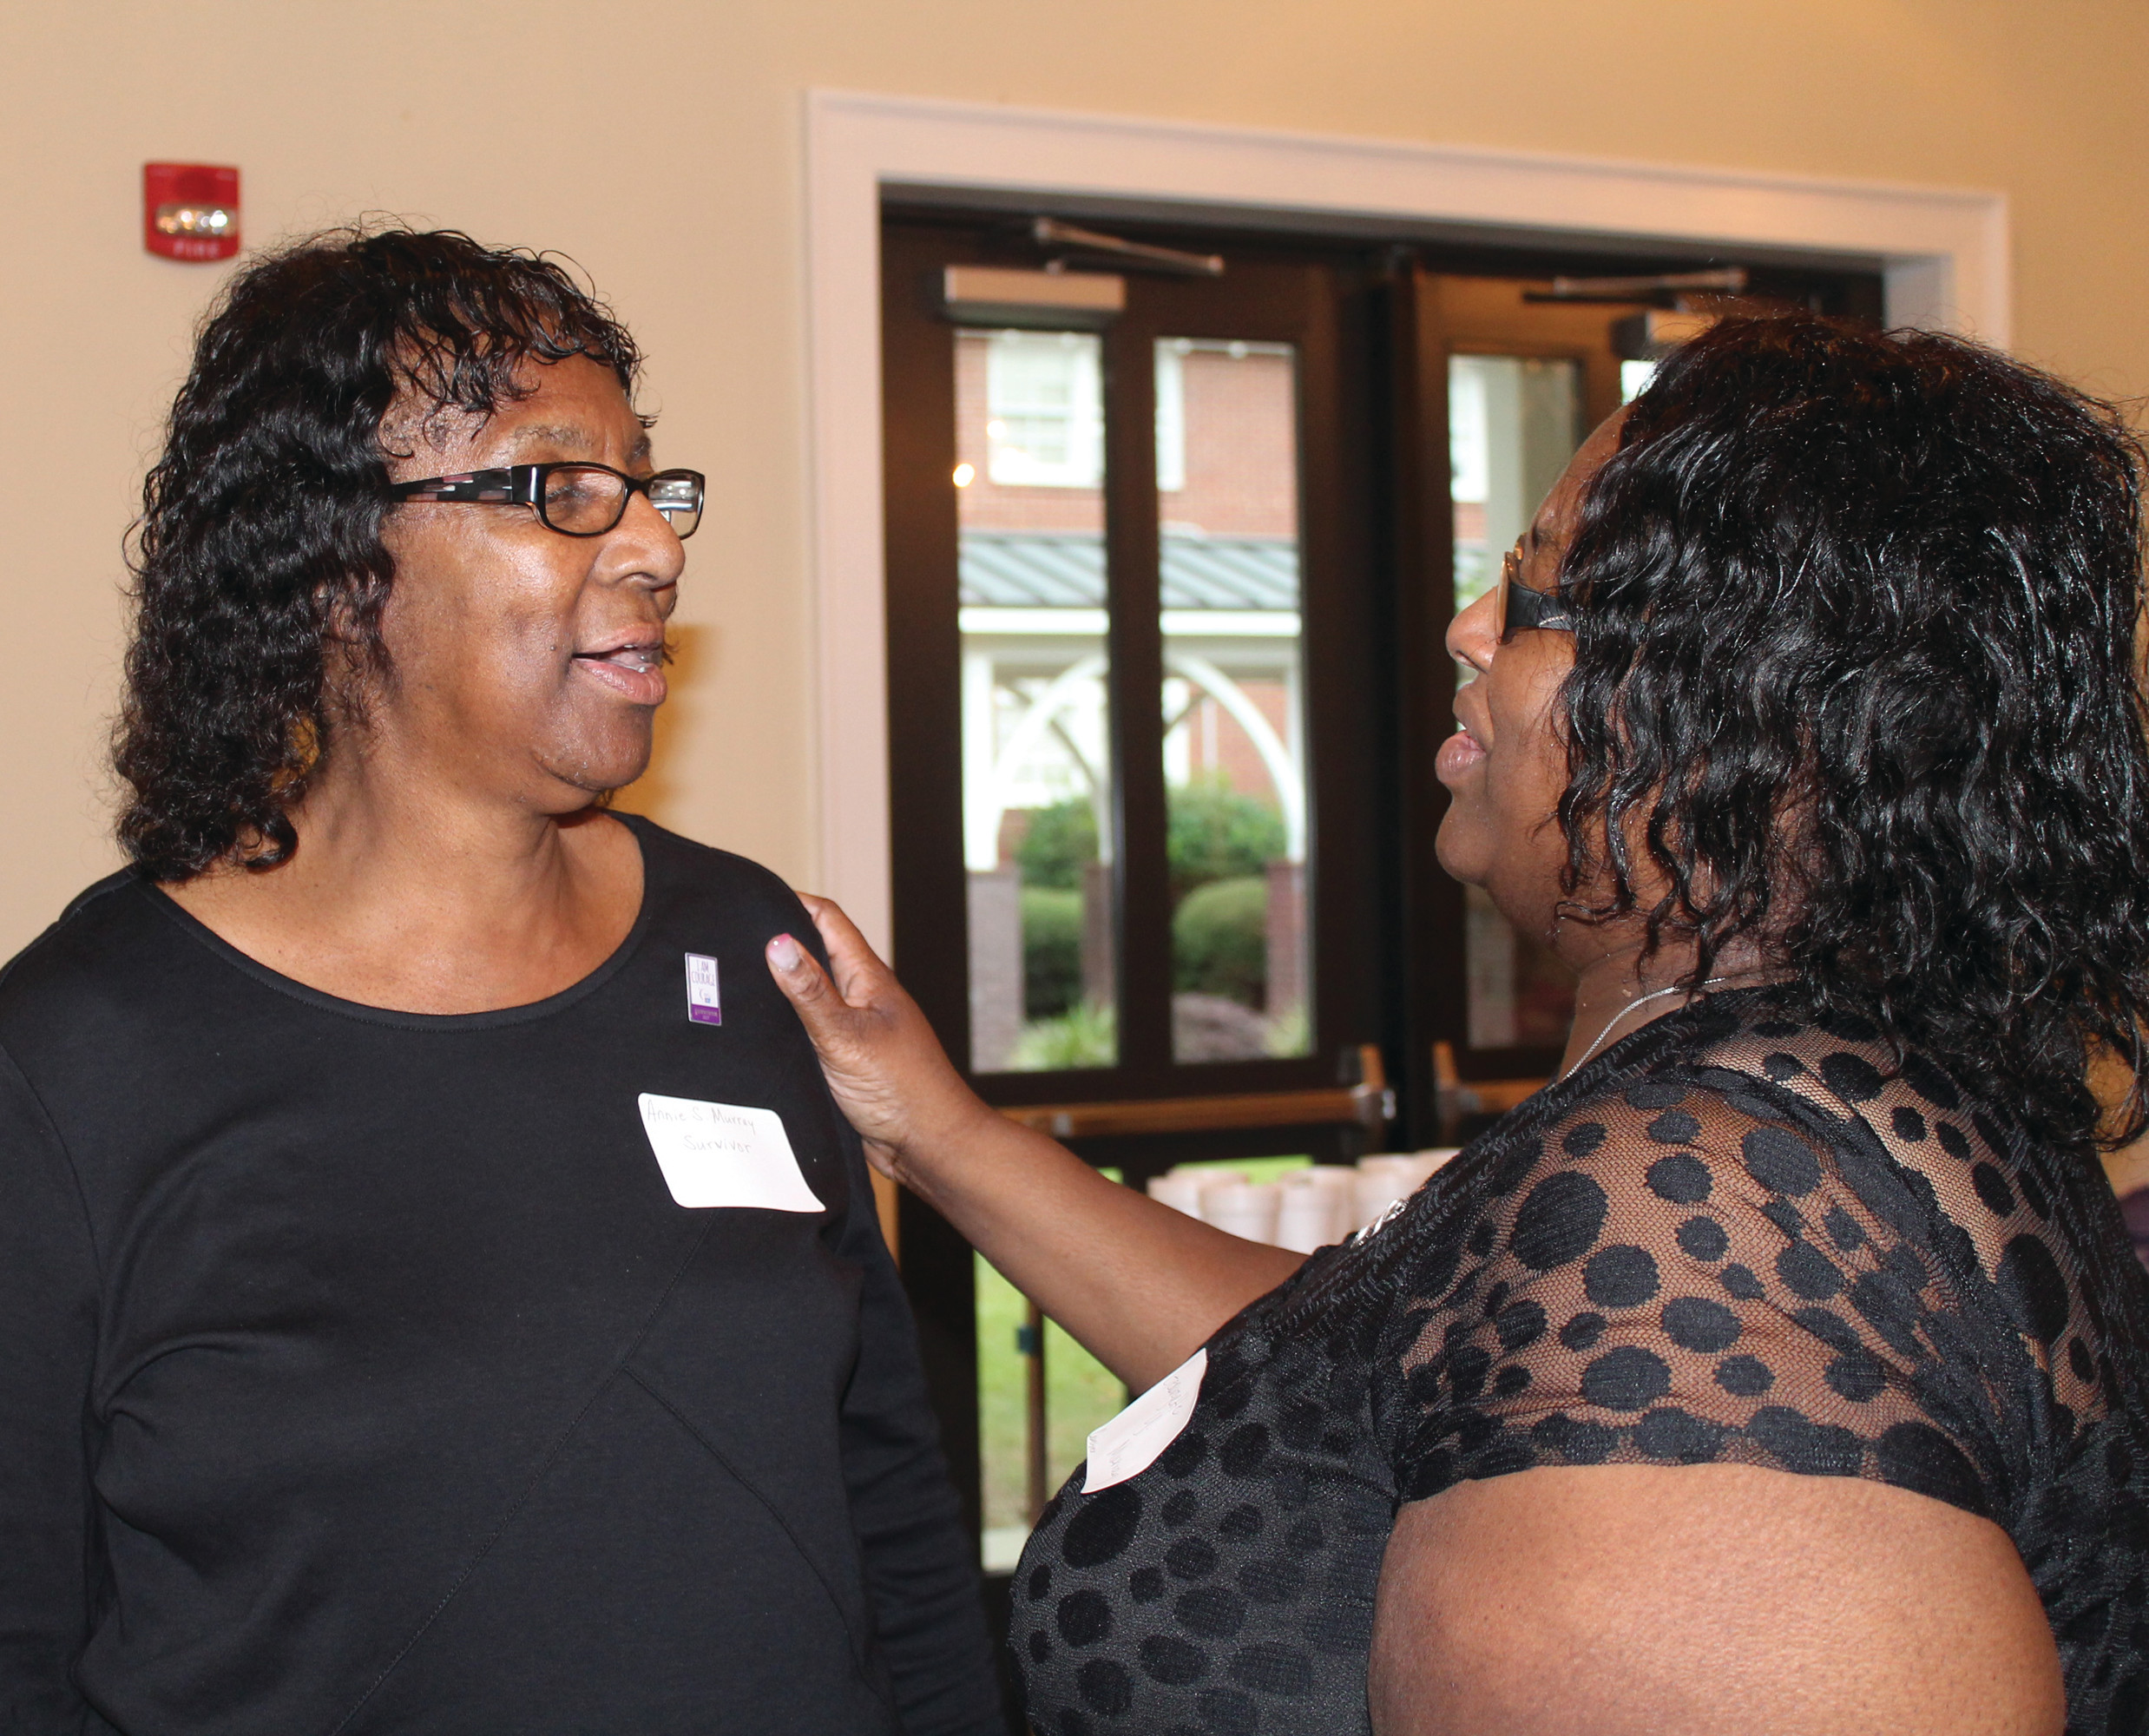 Annie Murray, a cancer survivor, and her daughter, Georgette, are all smiles following the Survivor Pinning Ceremony at the Celebrate Life Survivor Social held Aug. 31 at  Manning United Methodist Church. The Murrays and more than 100 caregivers and survivors took part in the Survivor Pinning Ceremony.